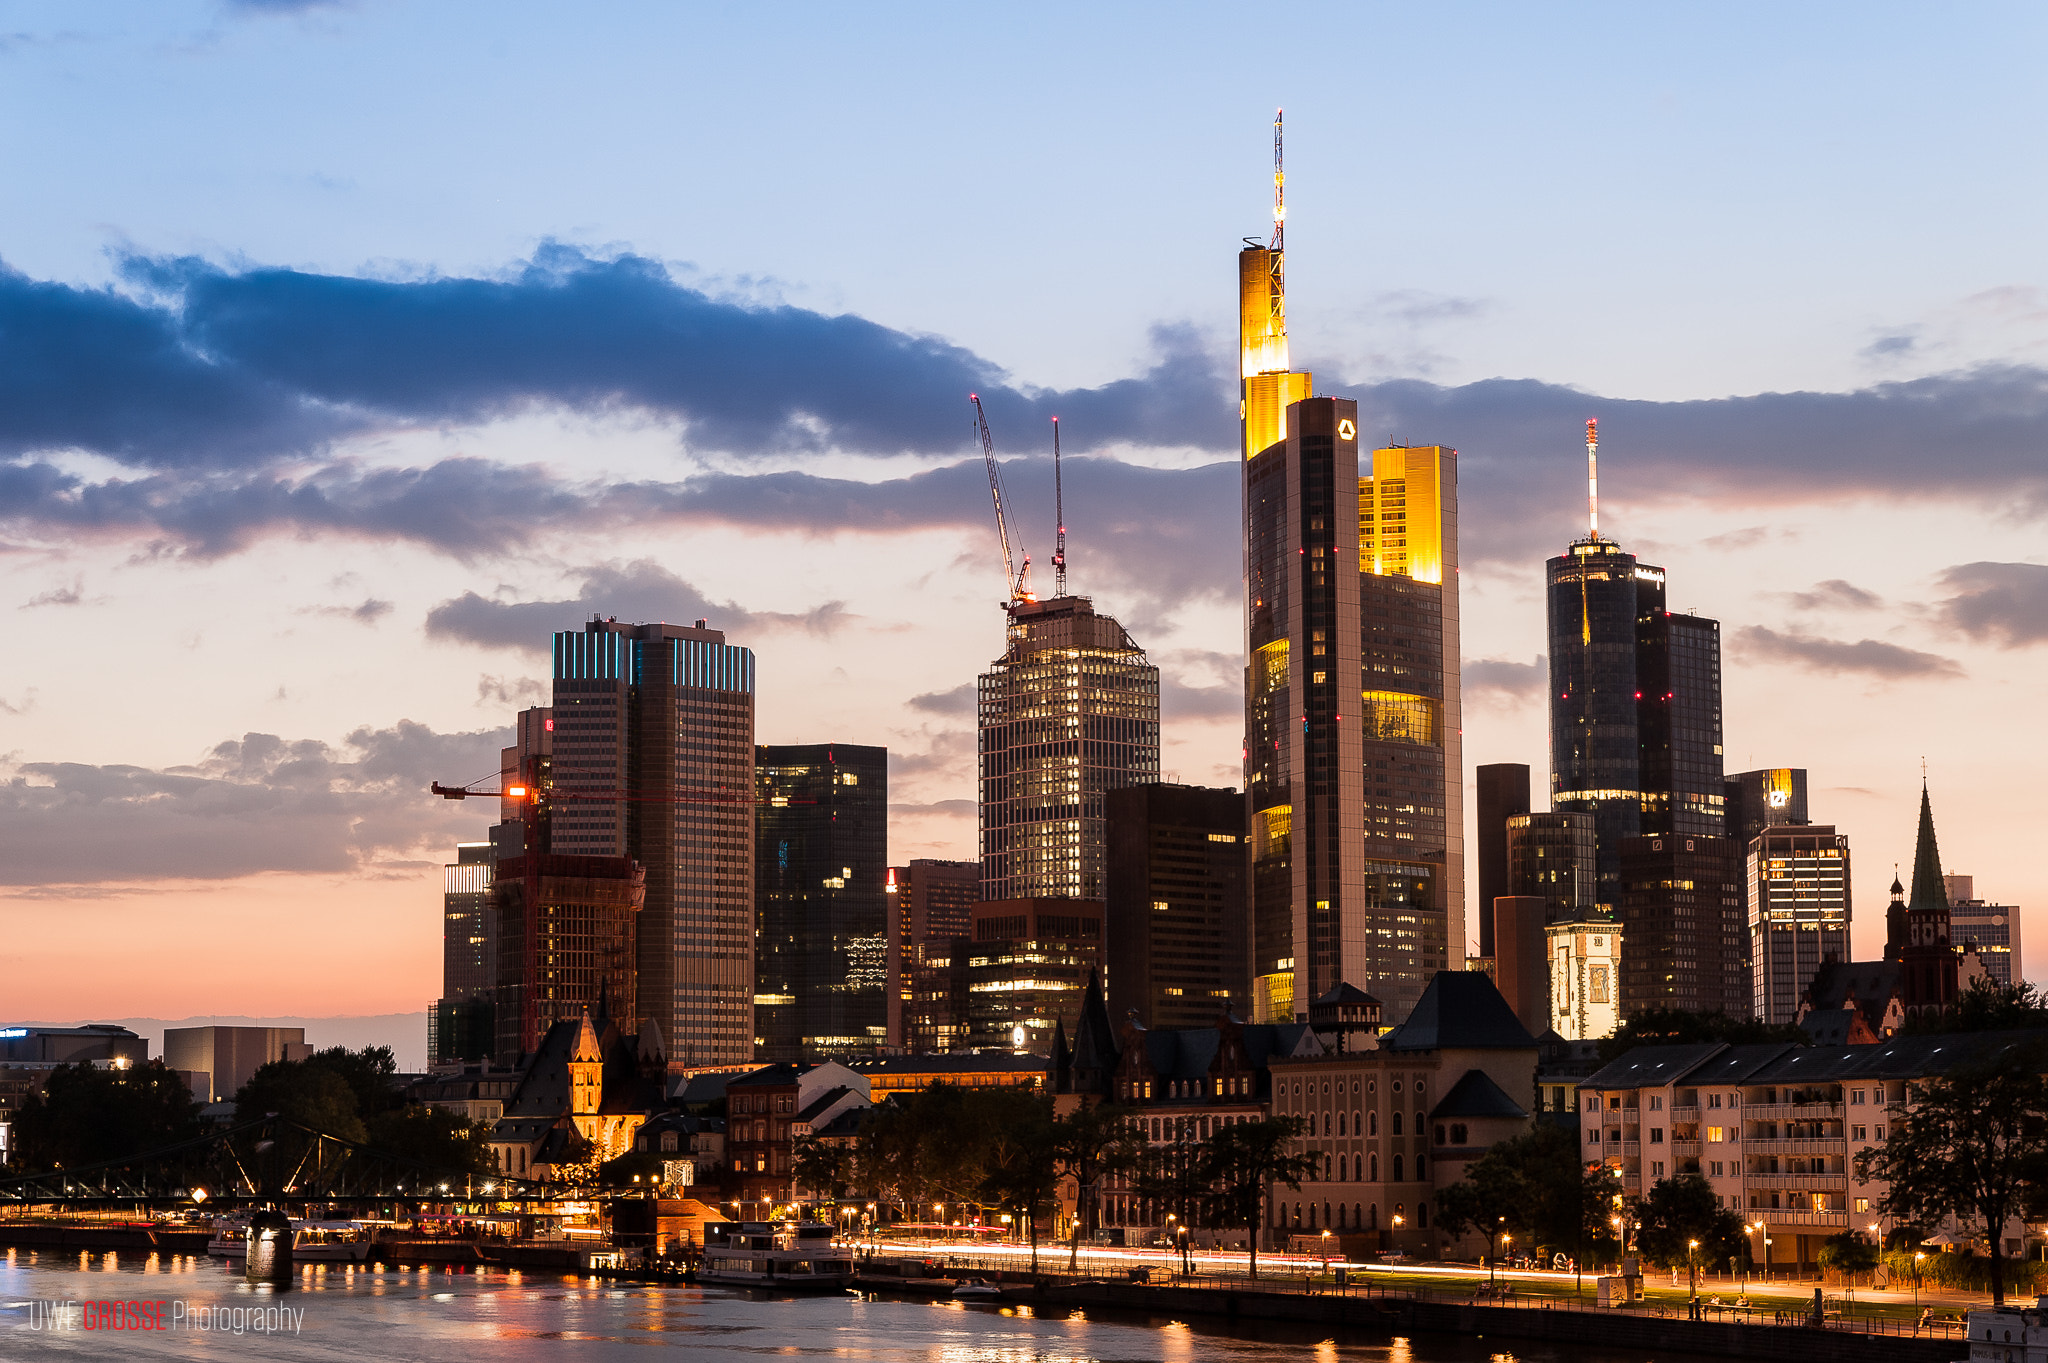 Photograph Mainhattan at night by teamnullvier on 500px